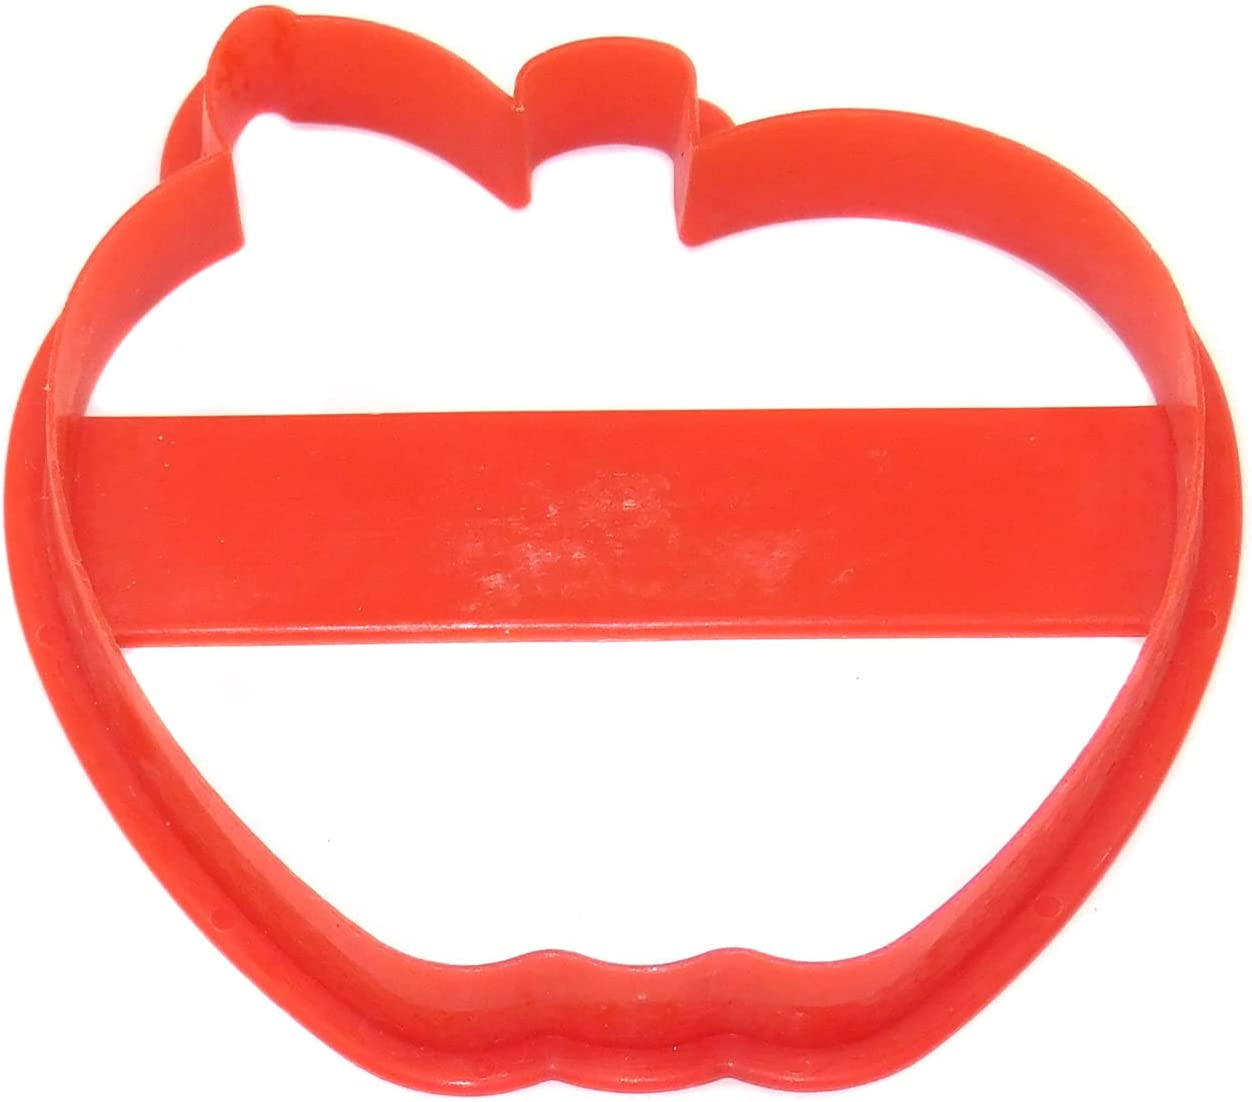 Vintage Red Plastic Wilton Apple Shaped Cookie Cutter